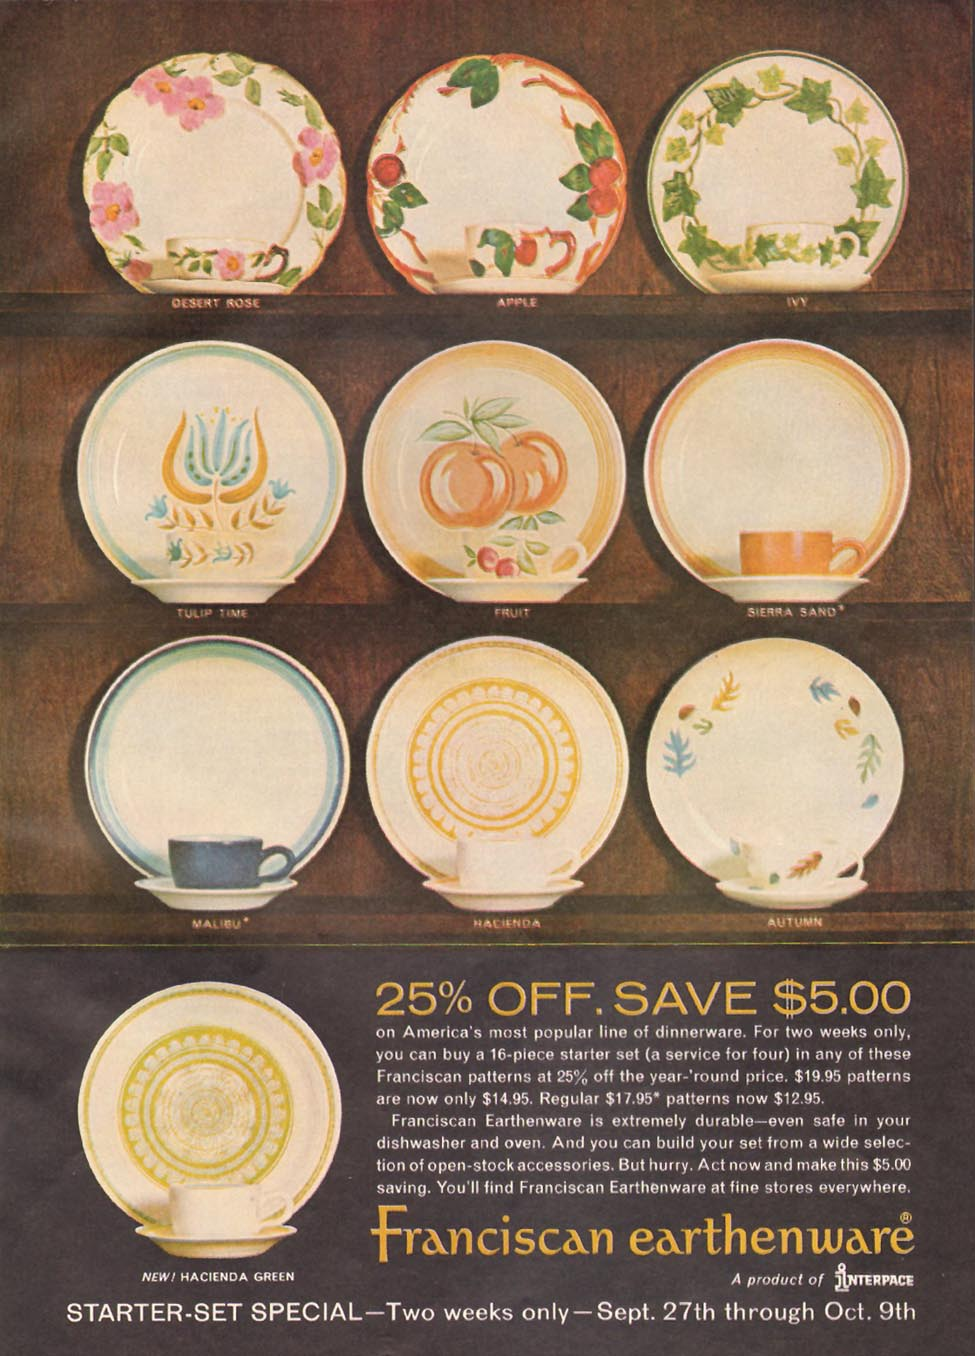 FRANCISCAN EARTHENWARE GOOD HOUSEKEEPING 10/01/1965 p. 155